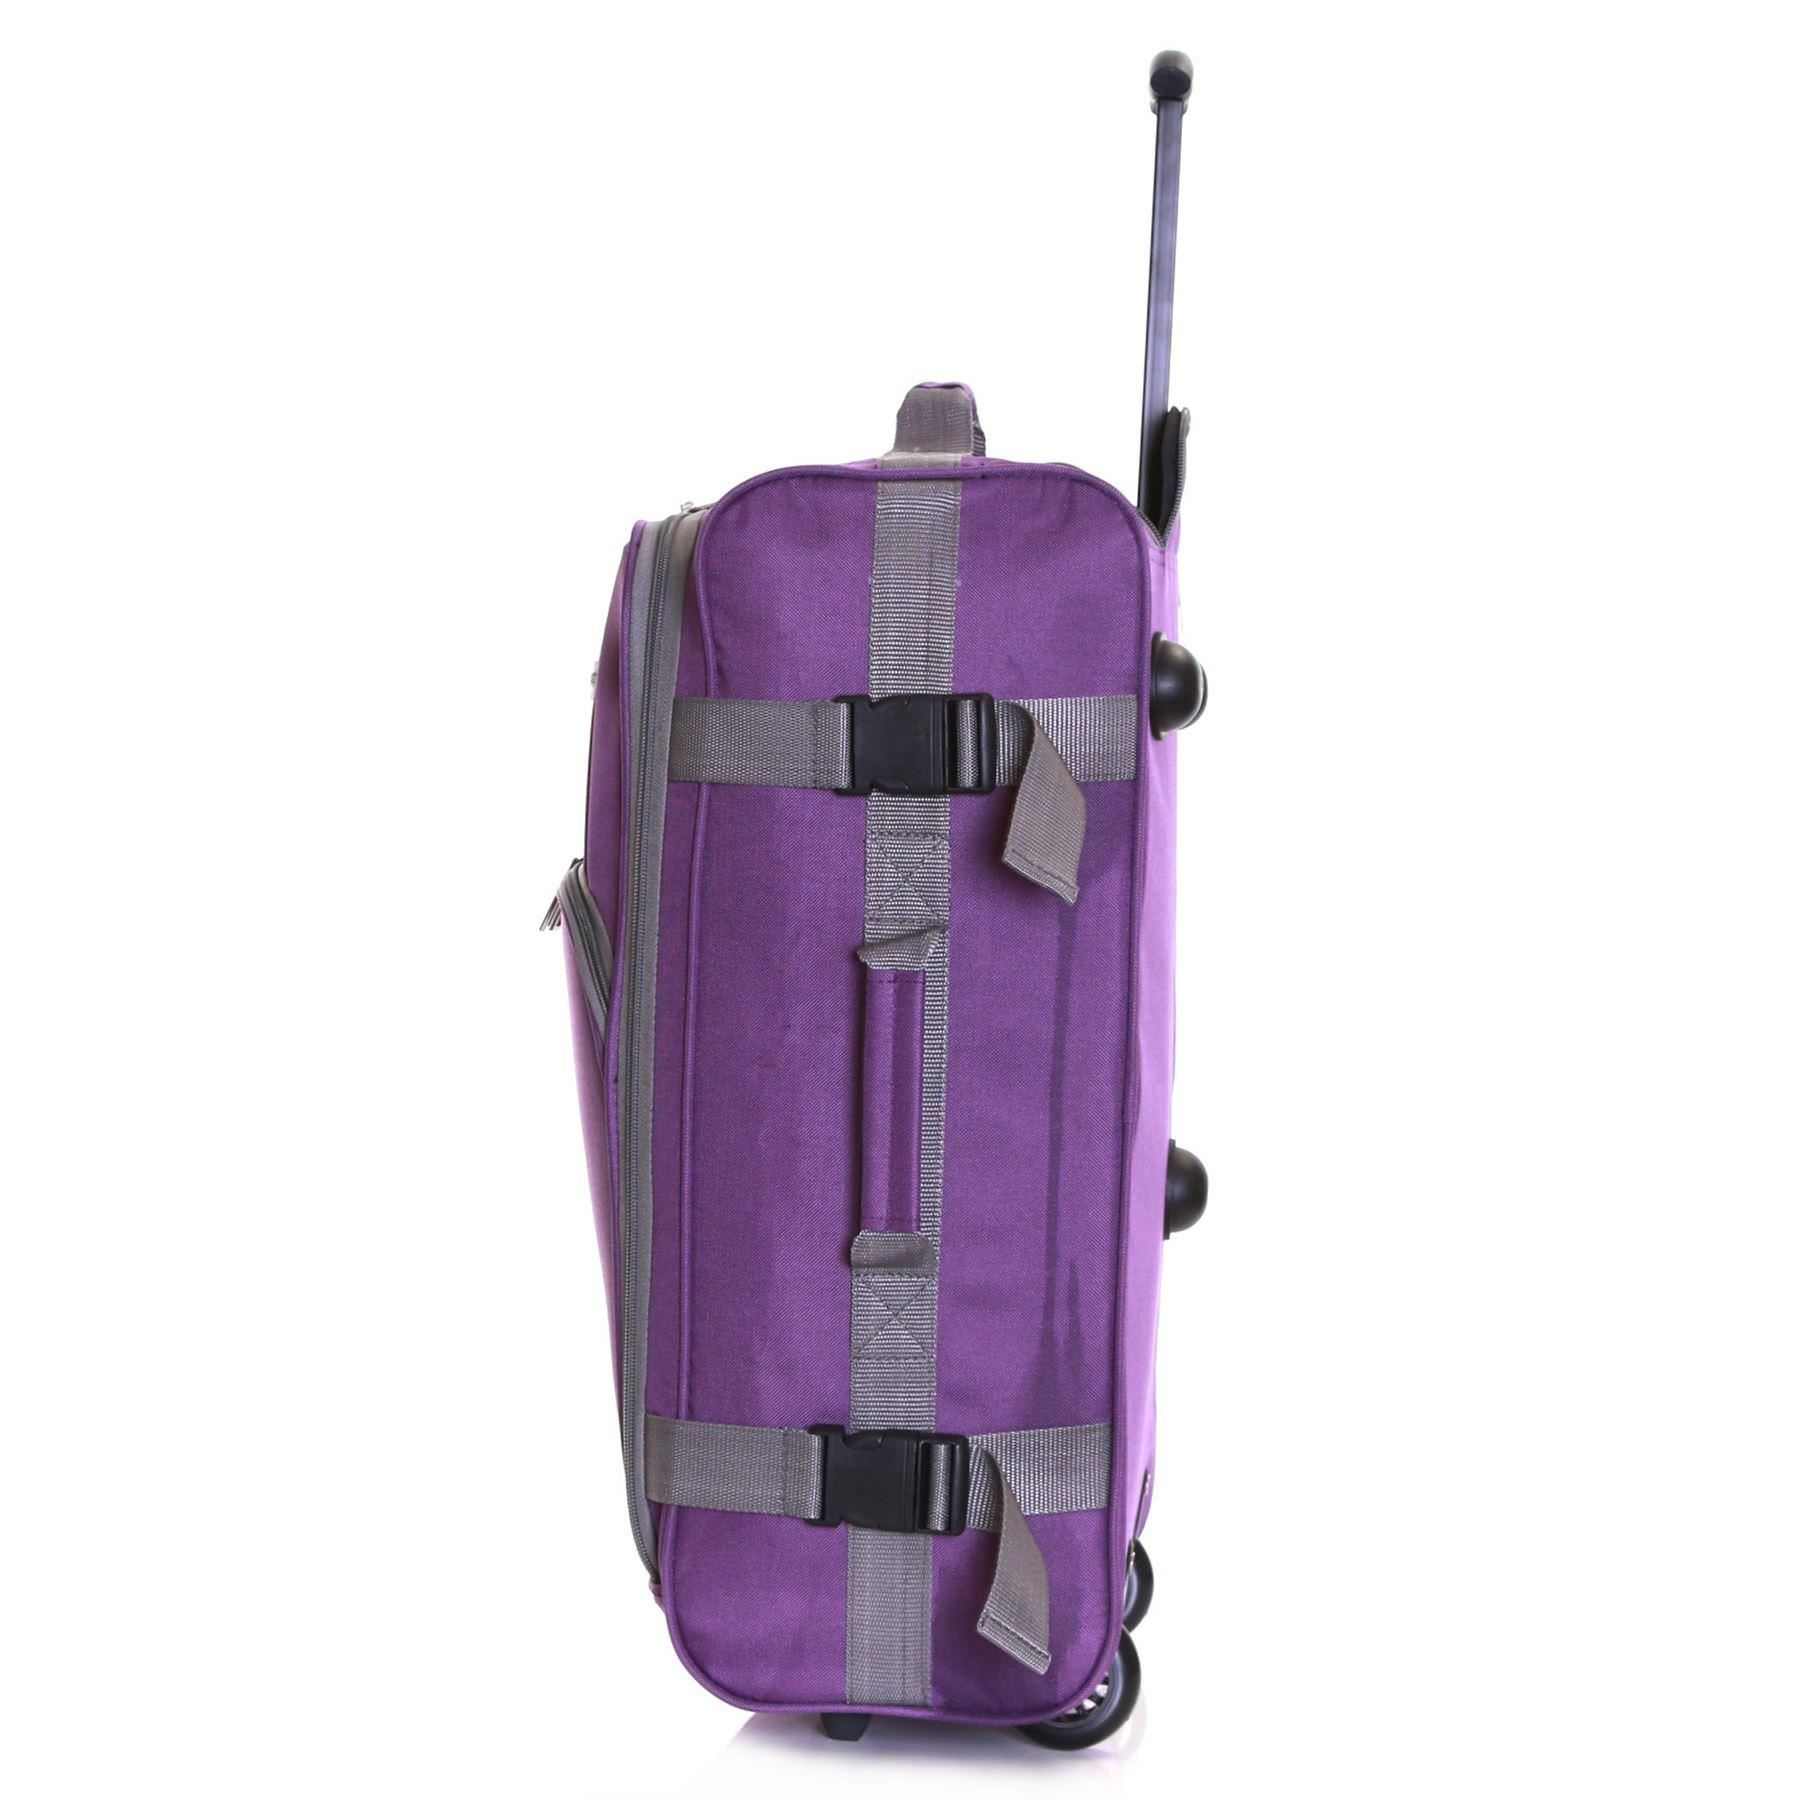 Ryanair-Easyjet-Set-of-2-Cabin-Approved-Hand-Trolley-Suitcases-Luggage-Case-Bags thumbnail 29